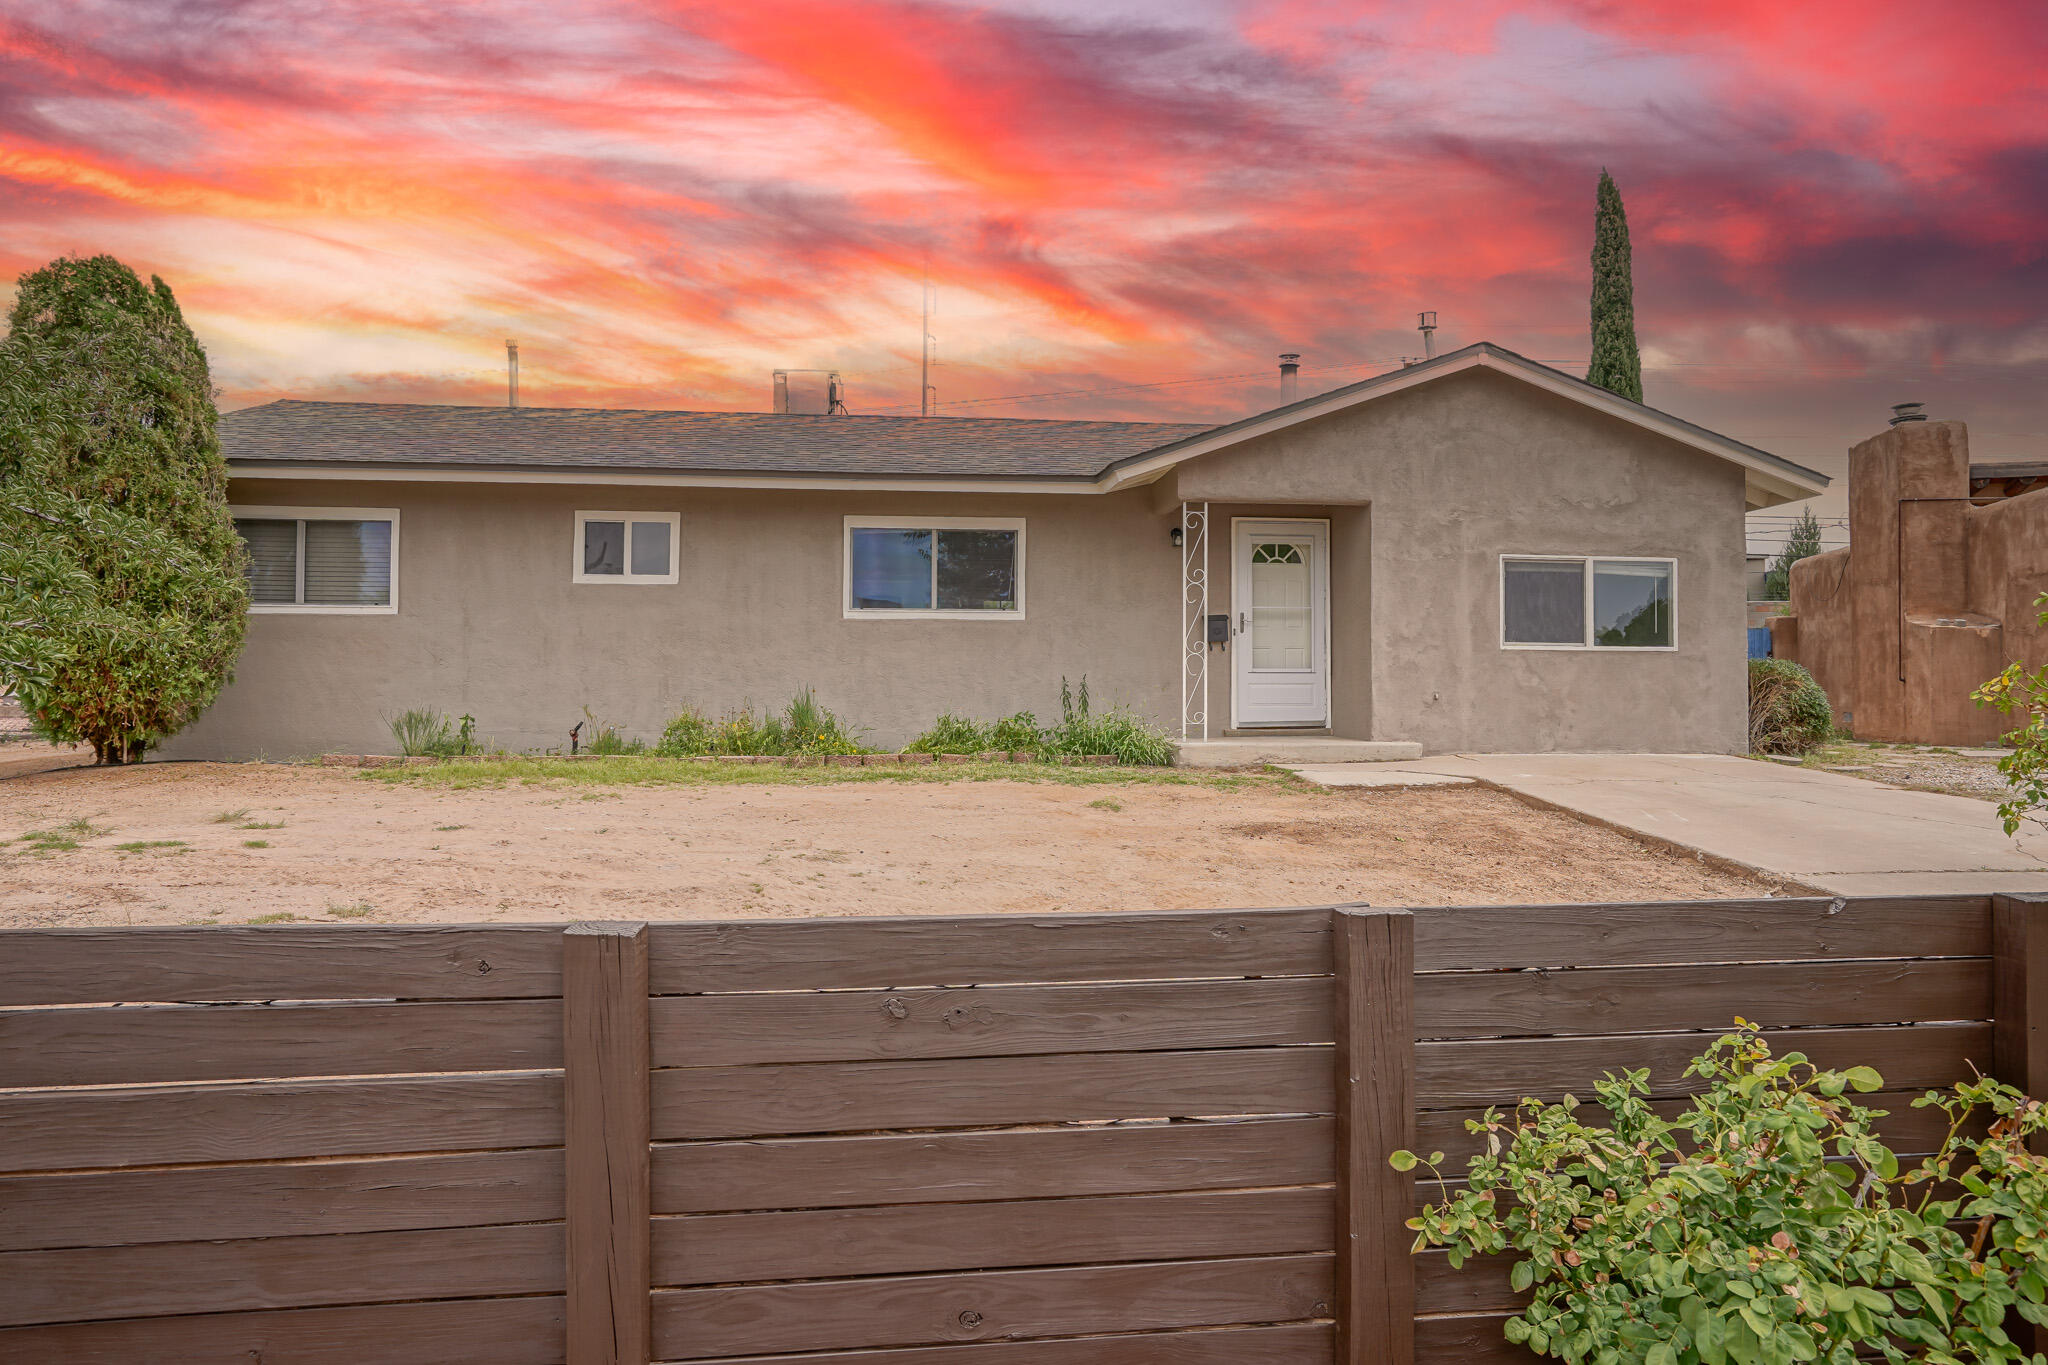 Recently remodeled family home in the Northeast Heights. Home offers Newer roof, new carpet and paint. updated kitchen and bathrooms!  Office space with private side door access. Nice quiet neighborhood , close to parks, and easy access to the freeway.  Backyard Access on a large lot with a covered patio. This house is move in ready!